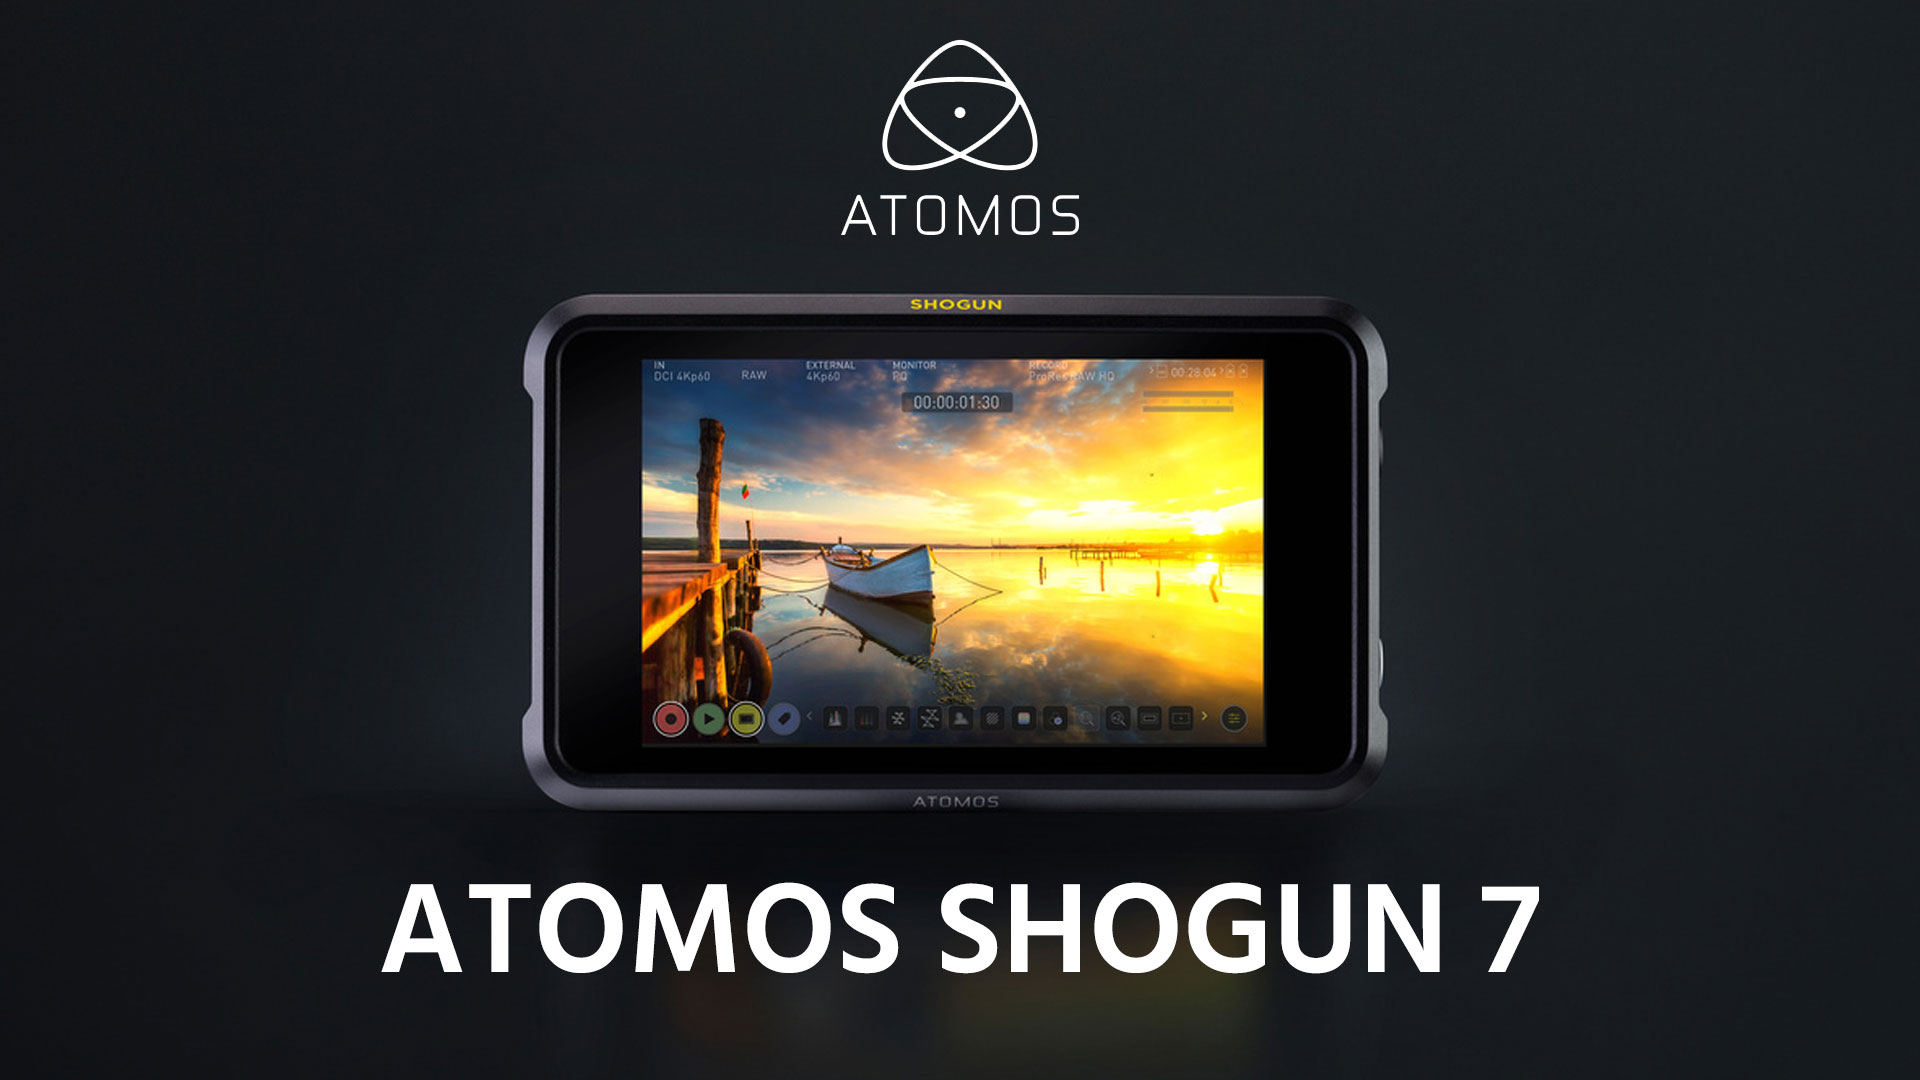 Atomos Shogun 7 Announced – 5.7K ProRes RAW, Live Switching, 1500nit HDR Recorder & Monitor